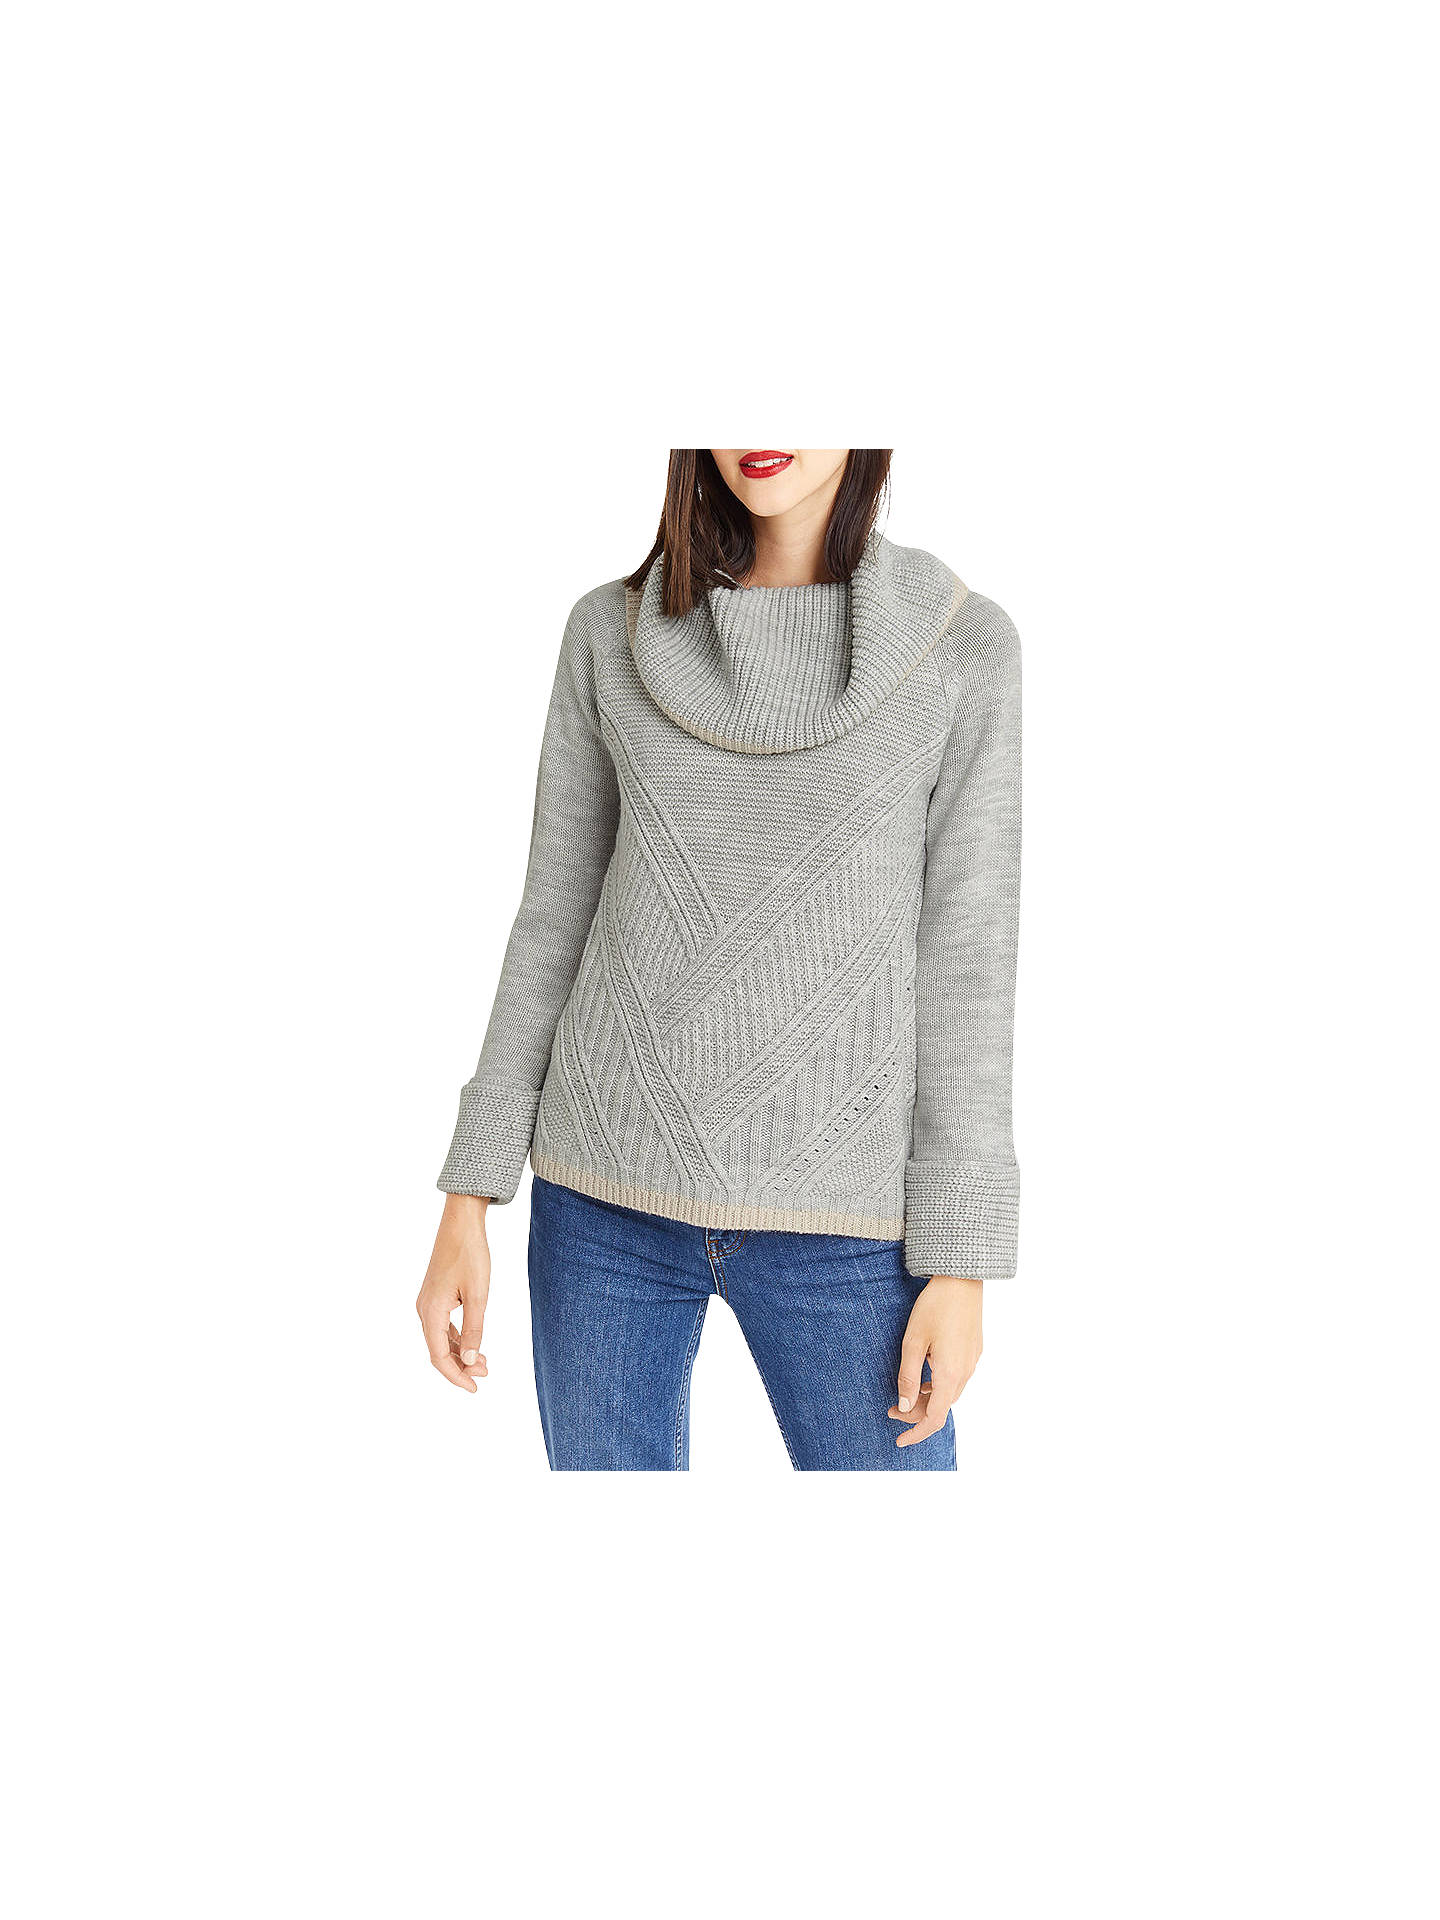 8c9ff1d6a3b6 Buy Oasis Ribbed Cowl Neck Jumper, Mid Grey, XS Online at johnlewis.com ...